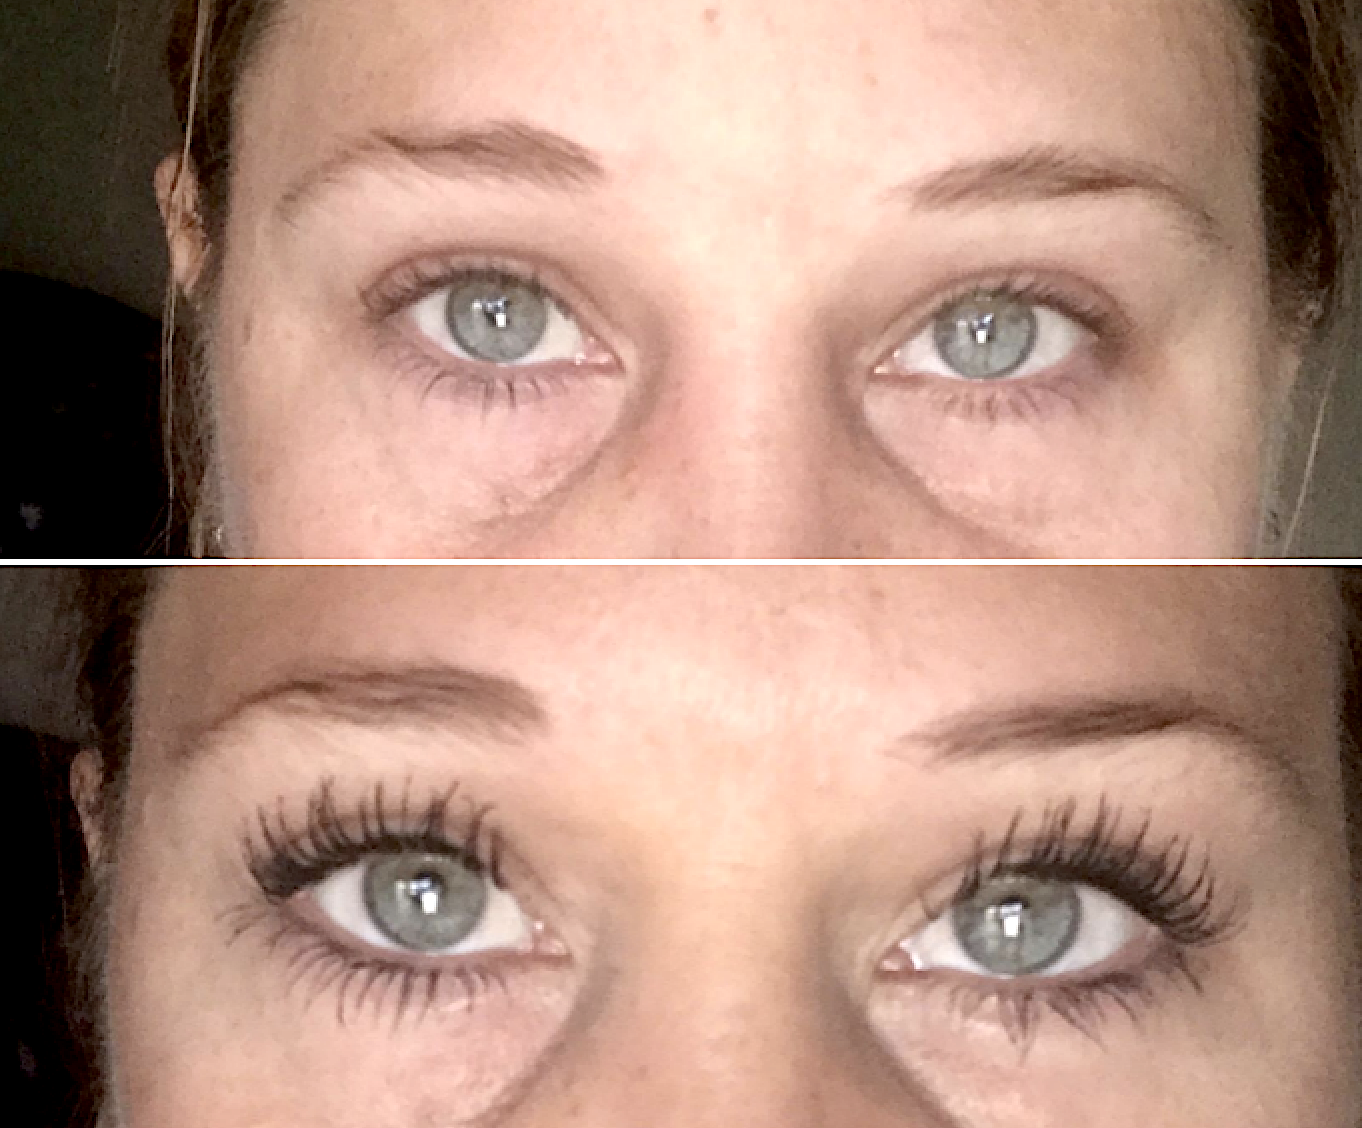 Reviewer's before/after pic using the mascara. The after pic shows longer, fuller-looking lashes.